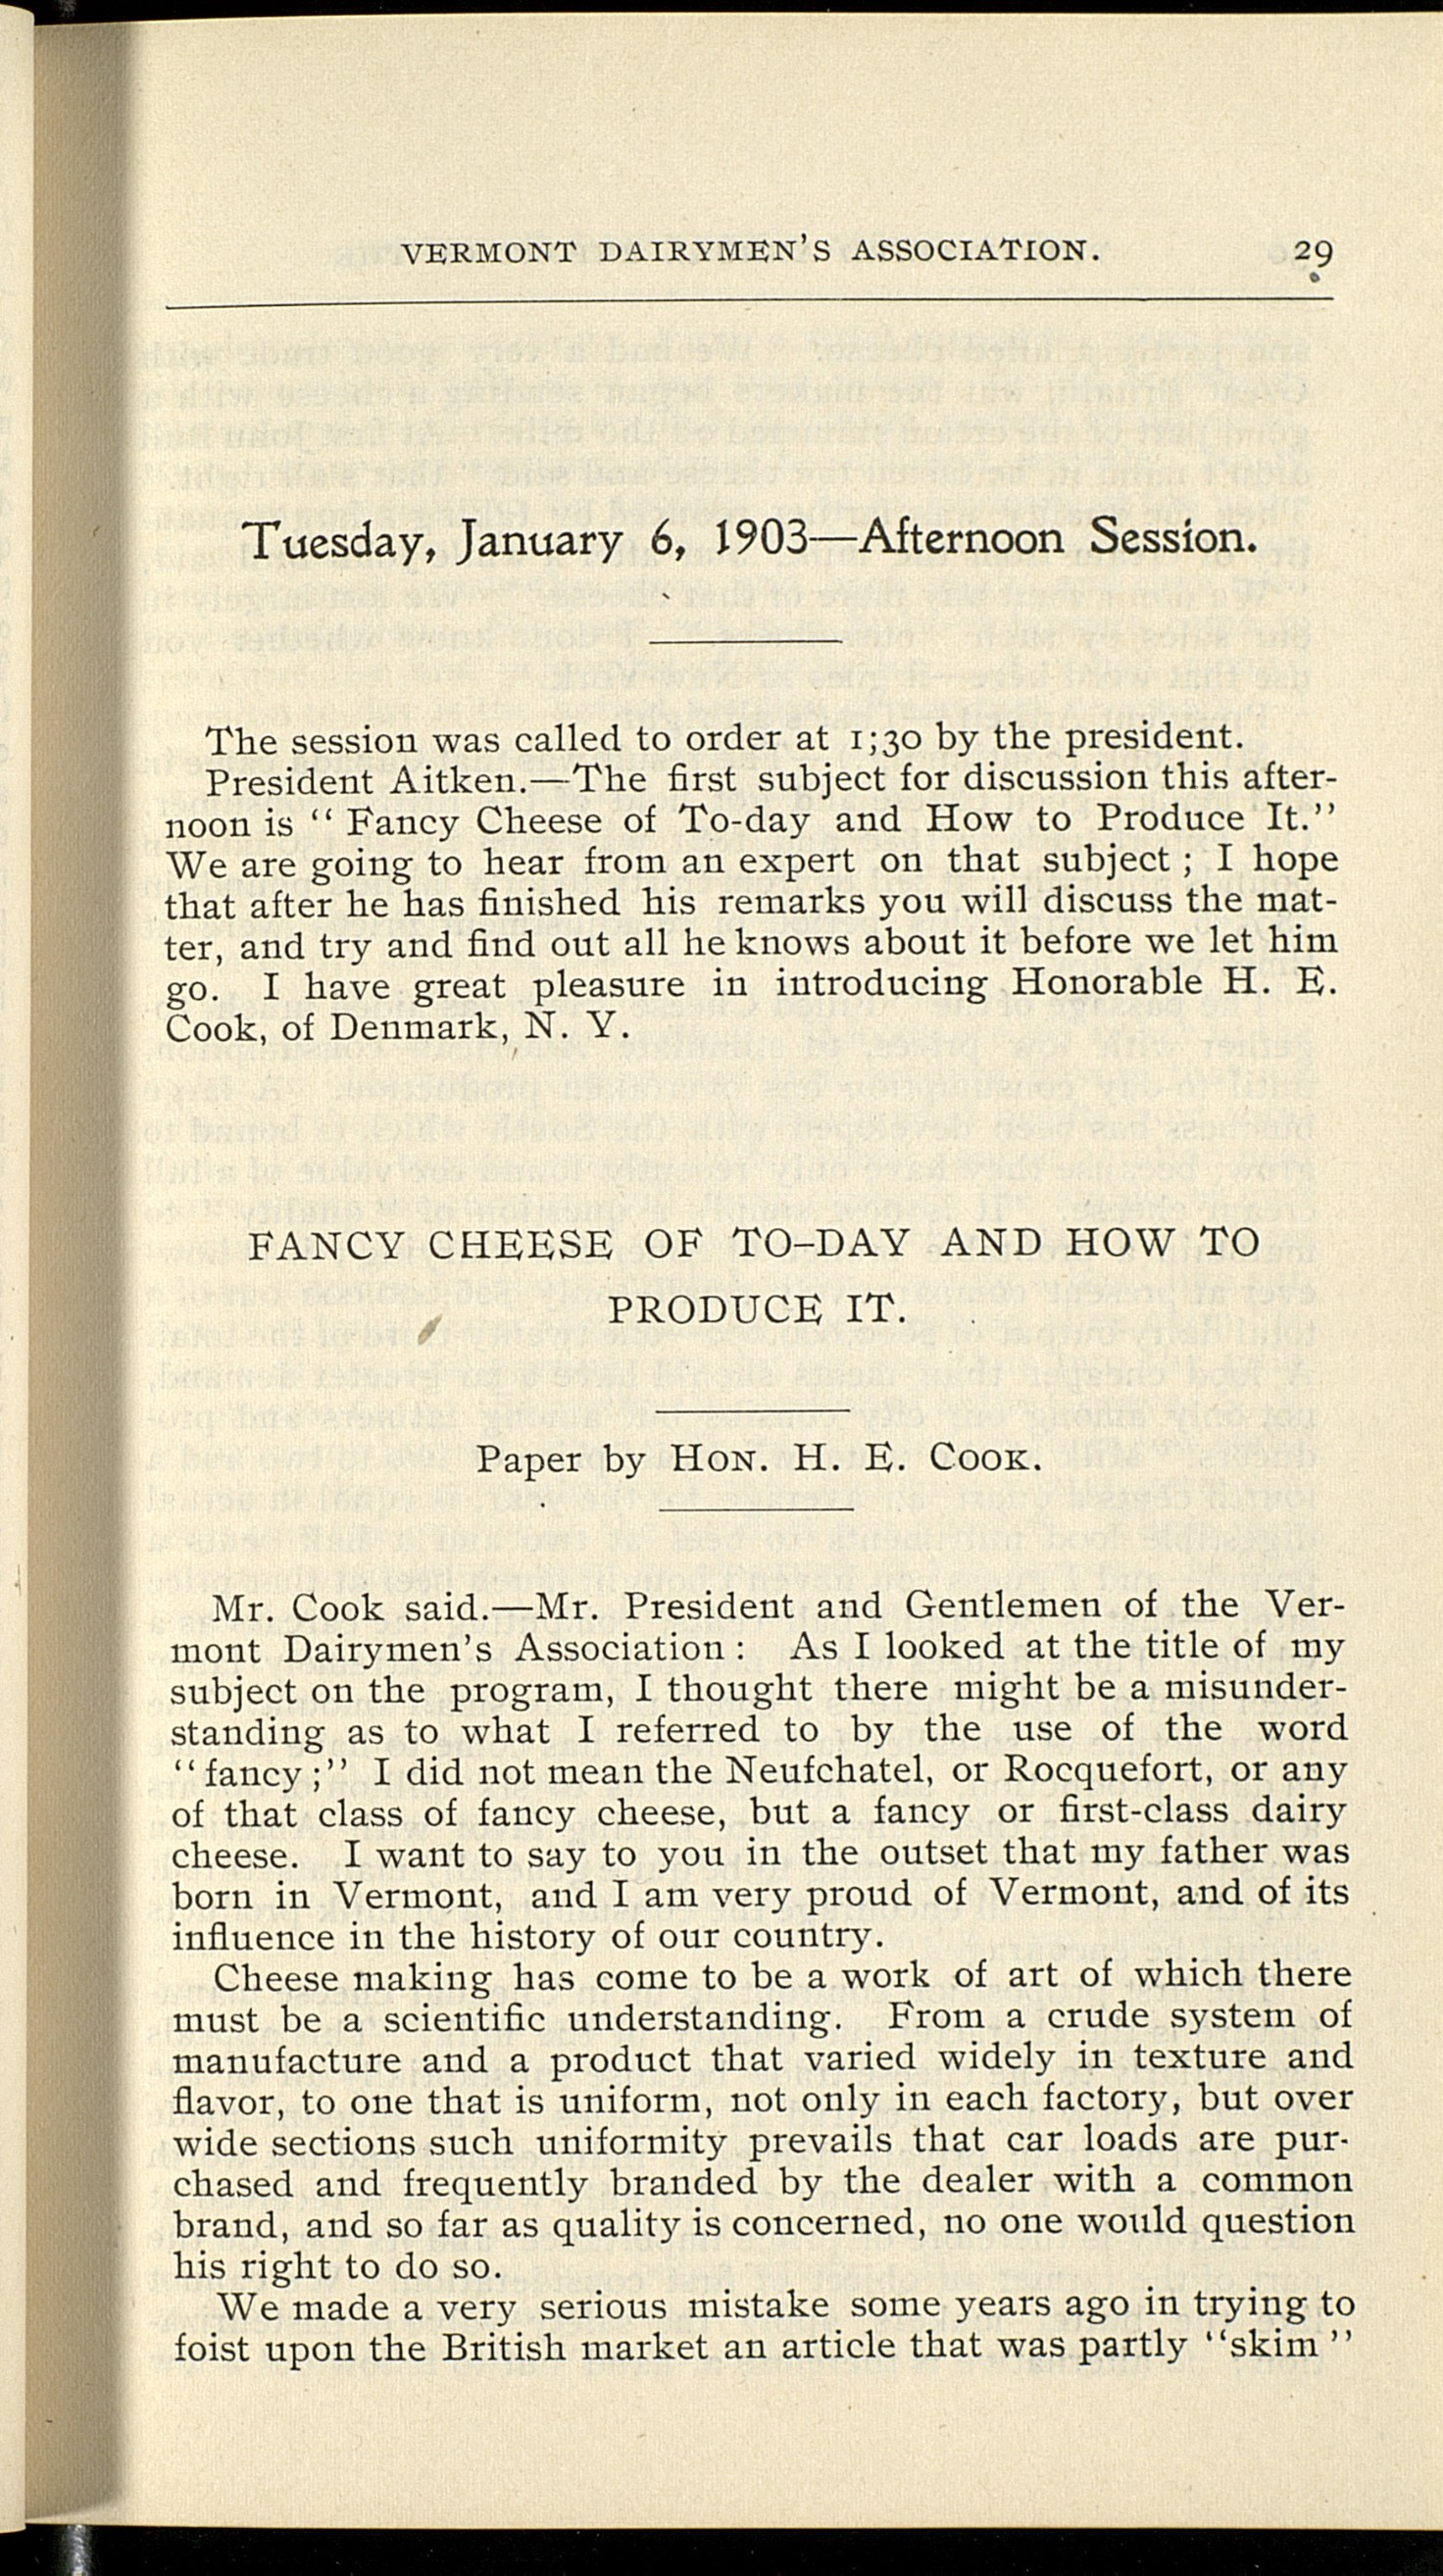 """Report of the Thirty-Third Annual Meeting of the Vermont Dairymen's Association, 1903; """"Fancy Cheese Today and How to Produce it."""